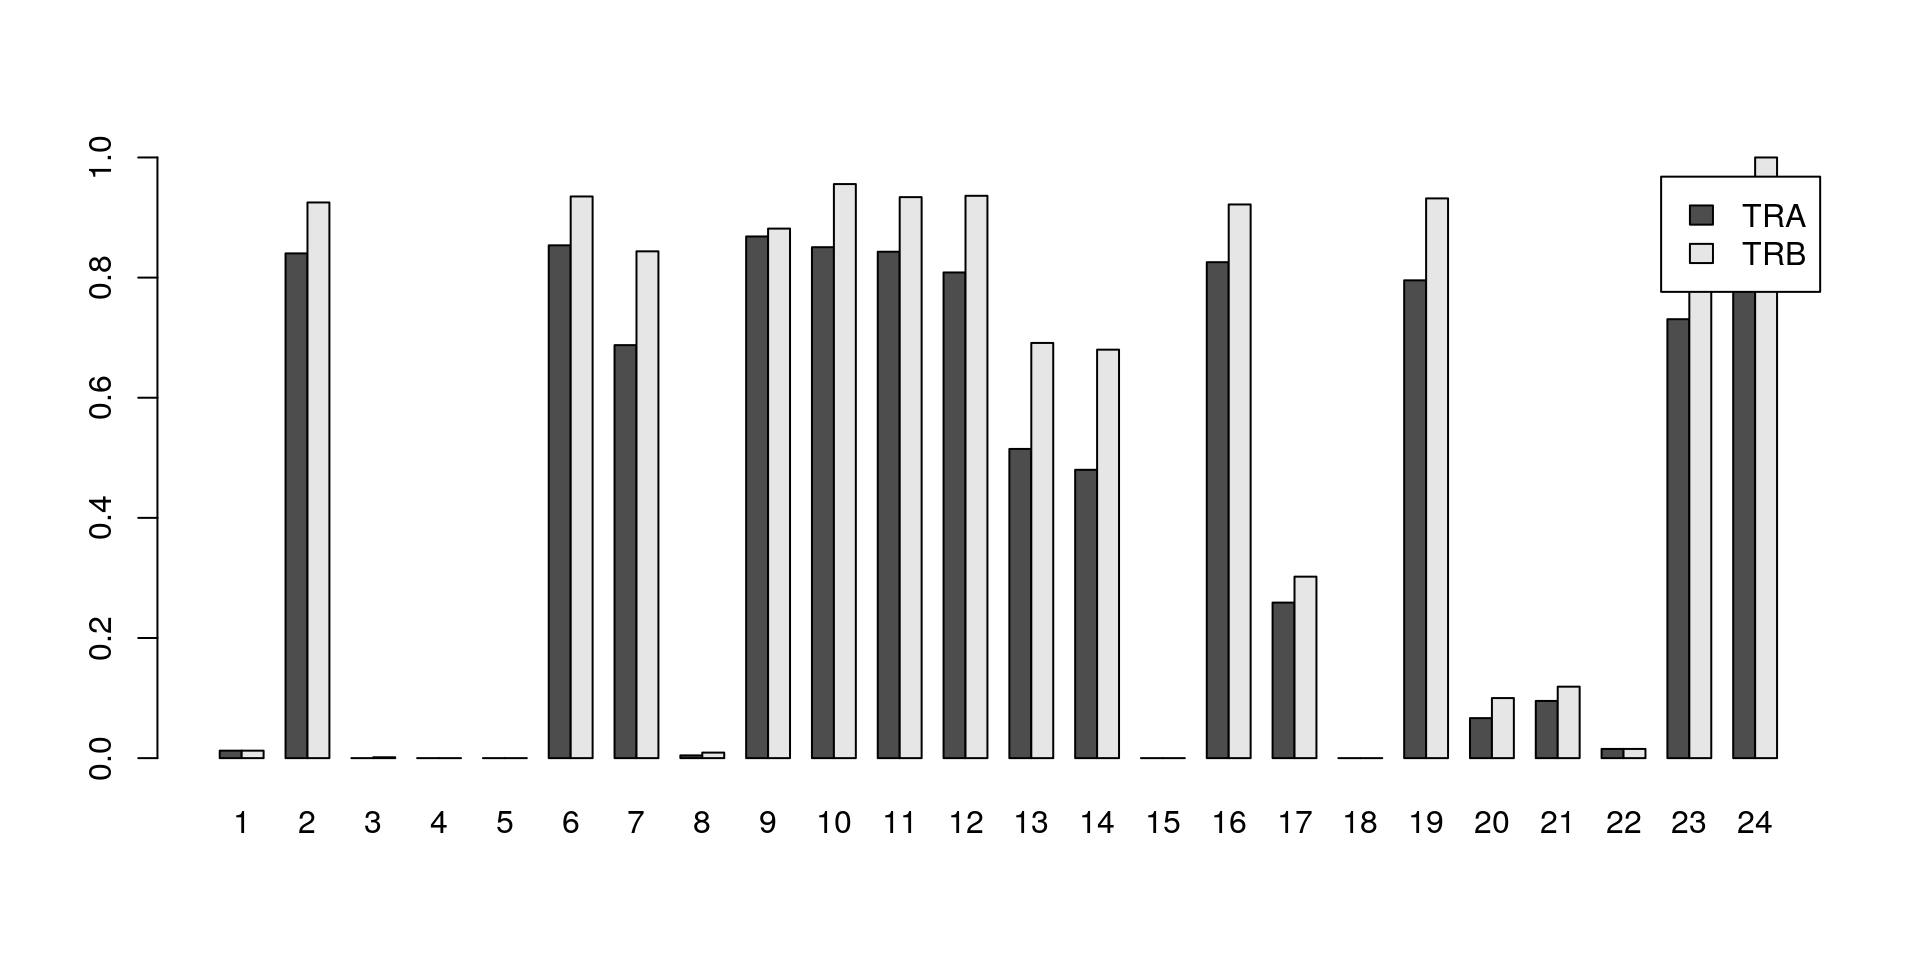 Proportion of cells in each cluster that express at least one productive sequence of the TCR $\alpha$ or $\beta$-chains.